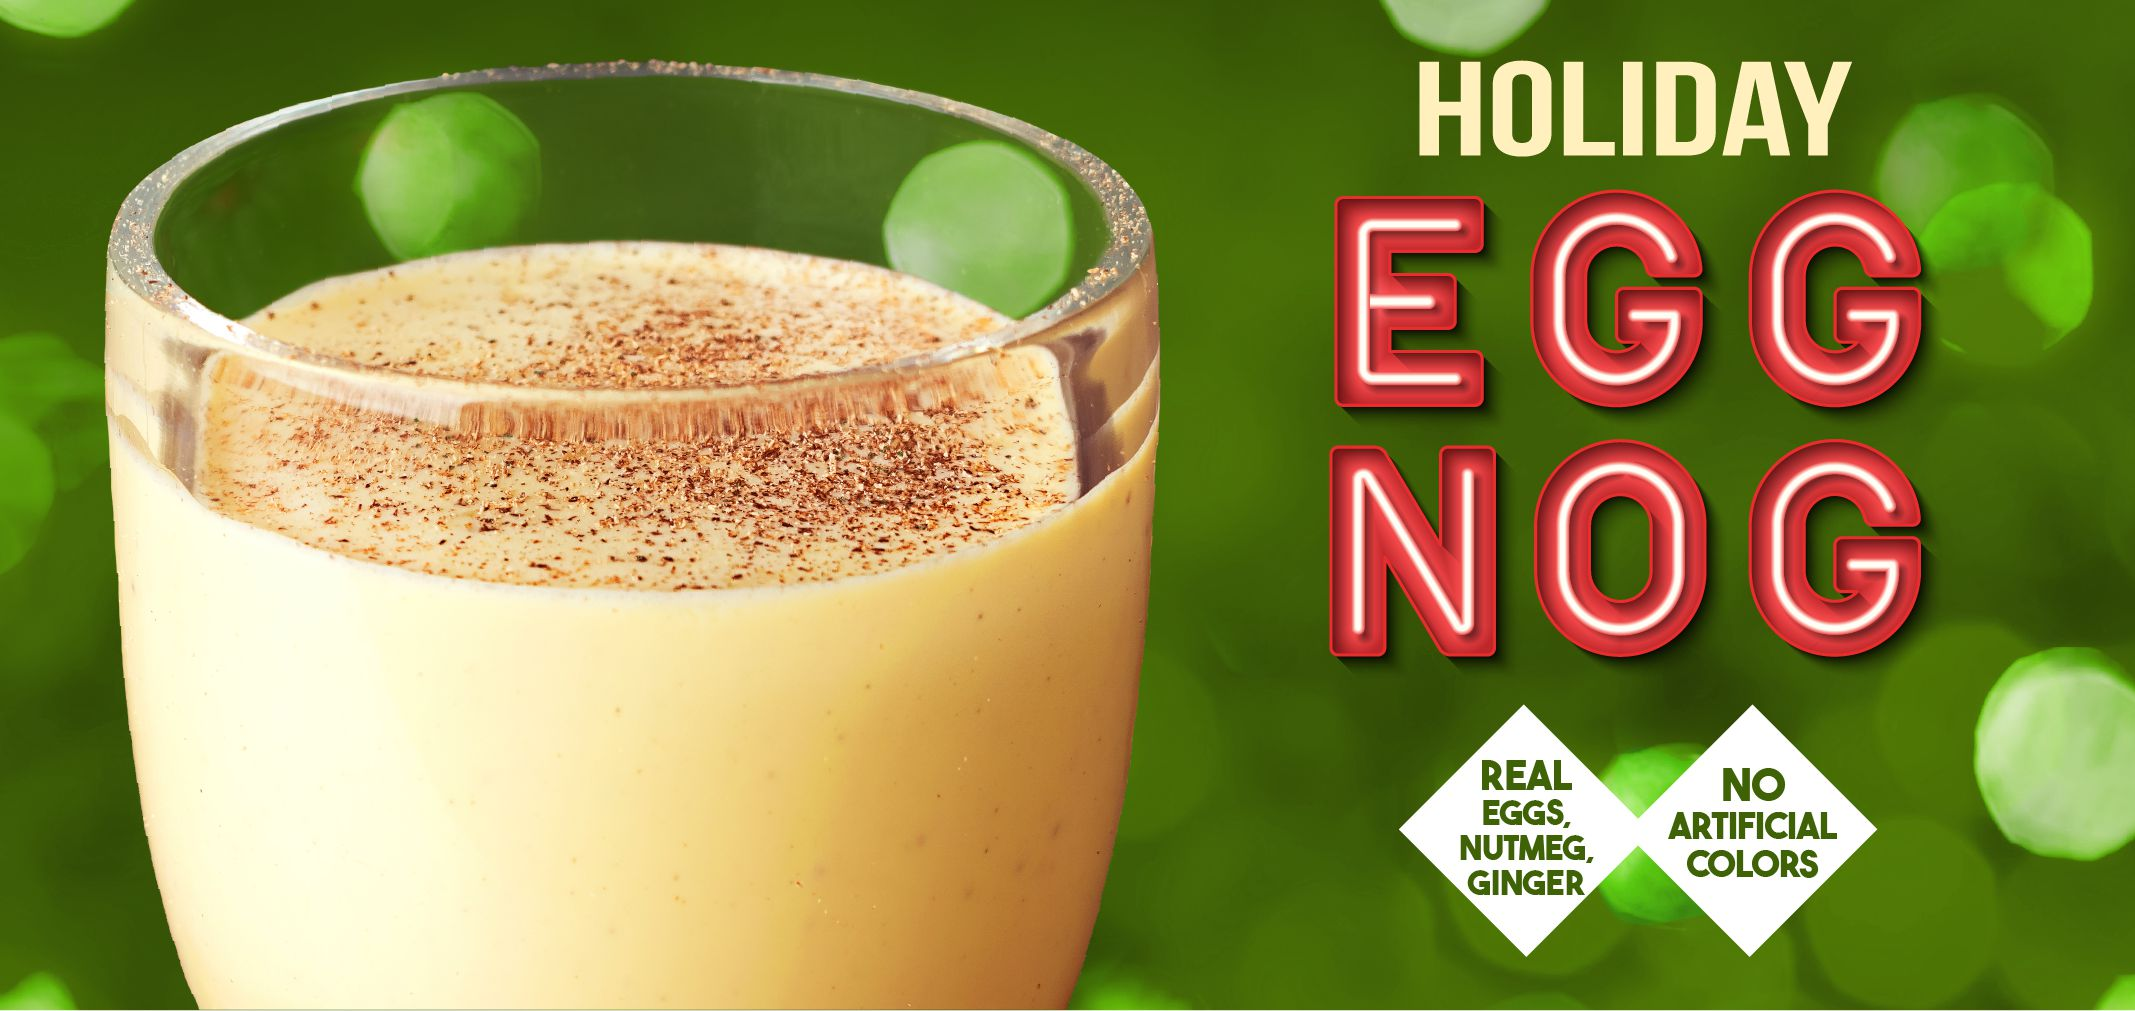 holiday eggnog label image